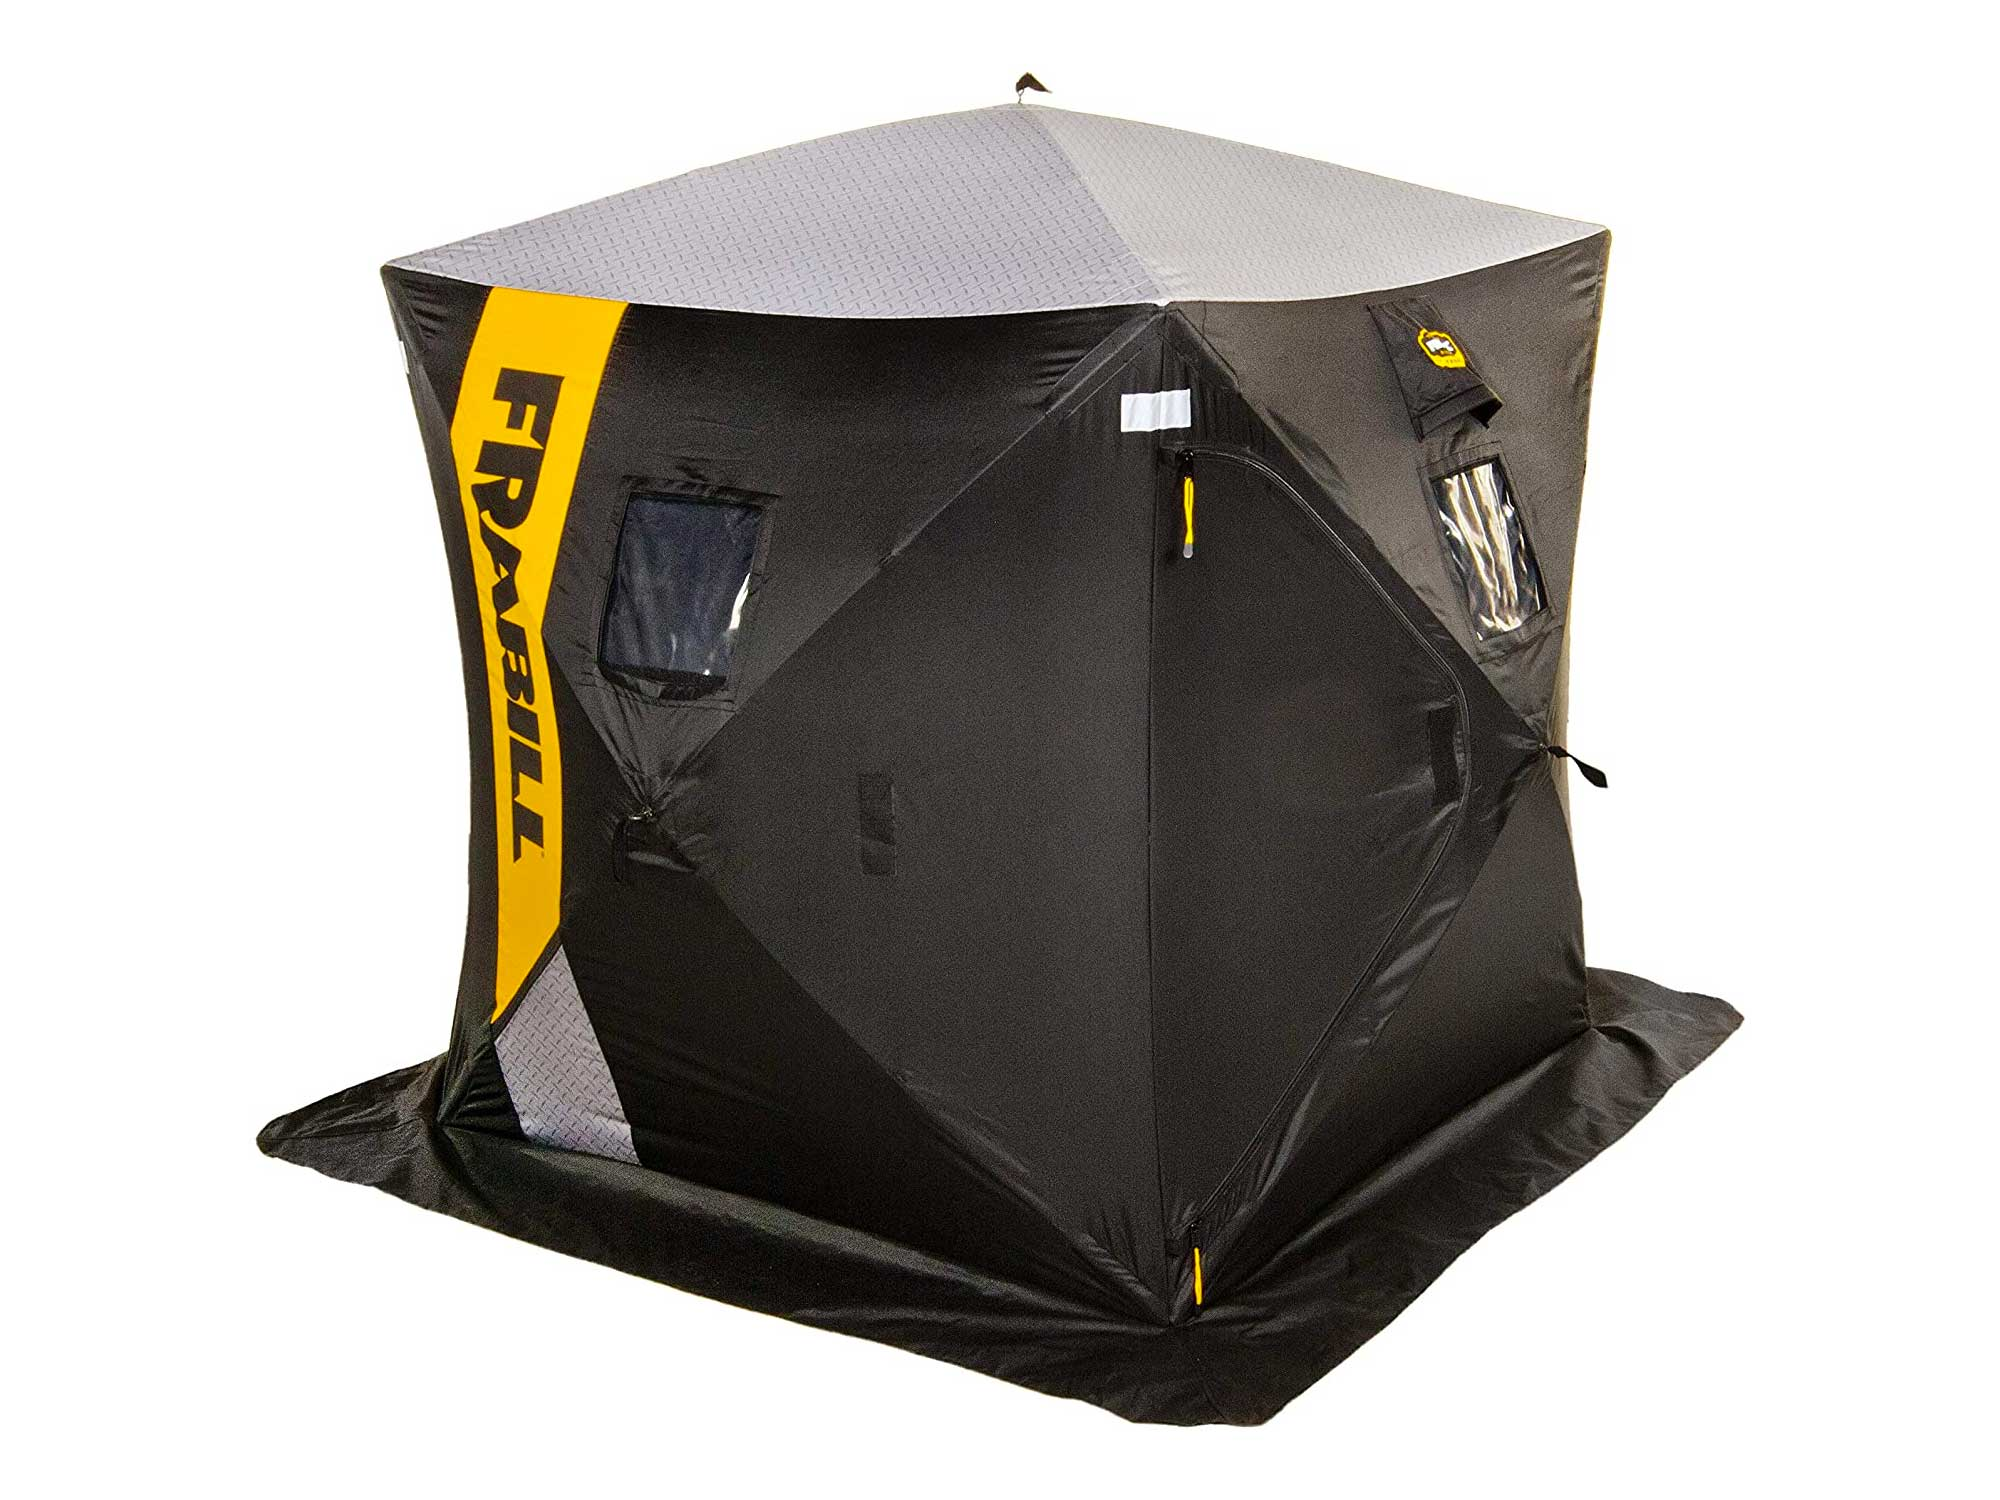 Frabill Premium Shelter for Ice-Fishing and Angler Capacities